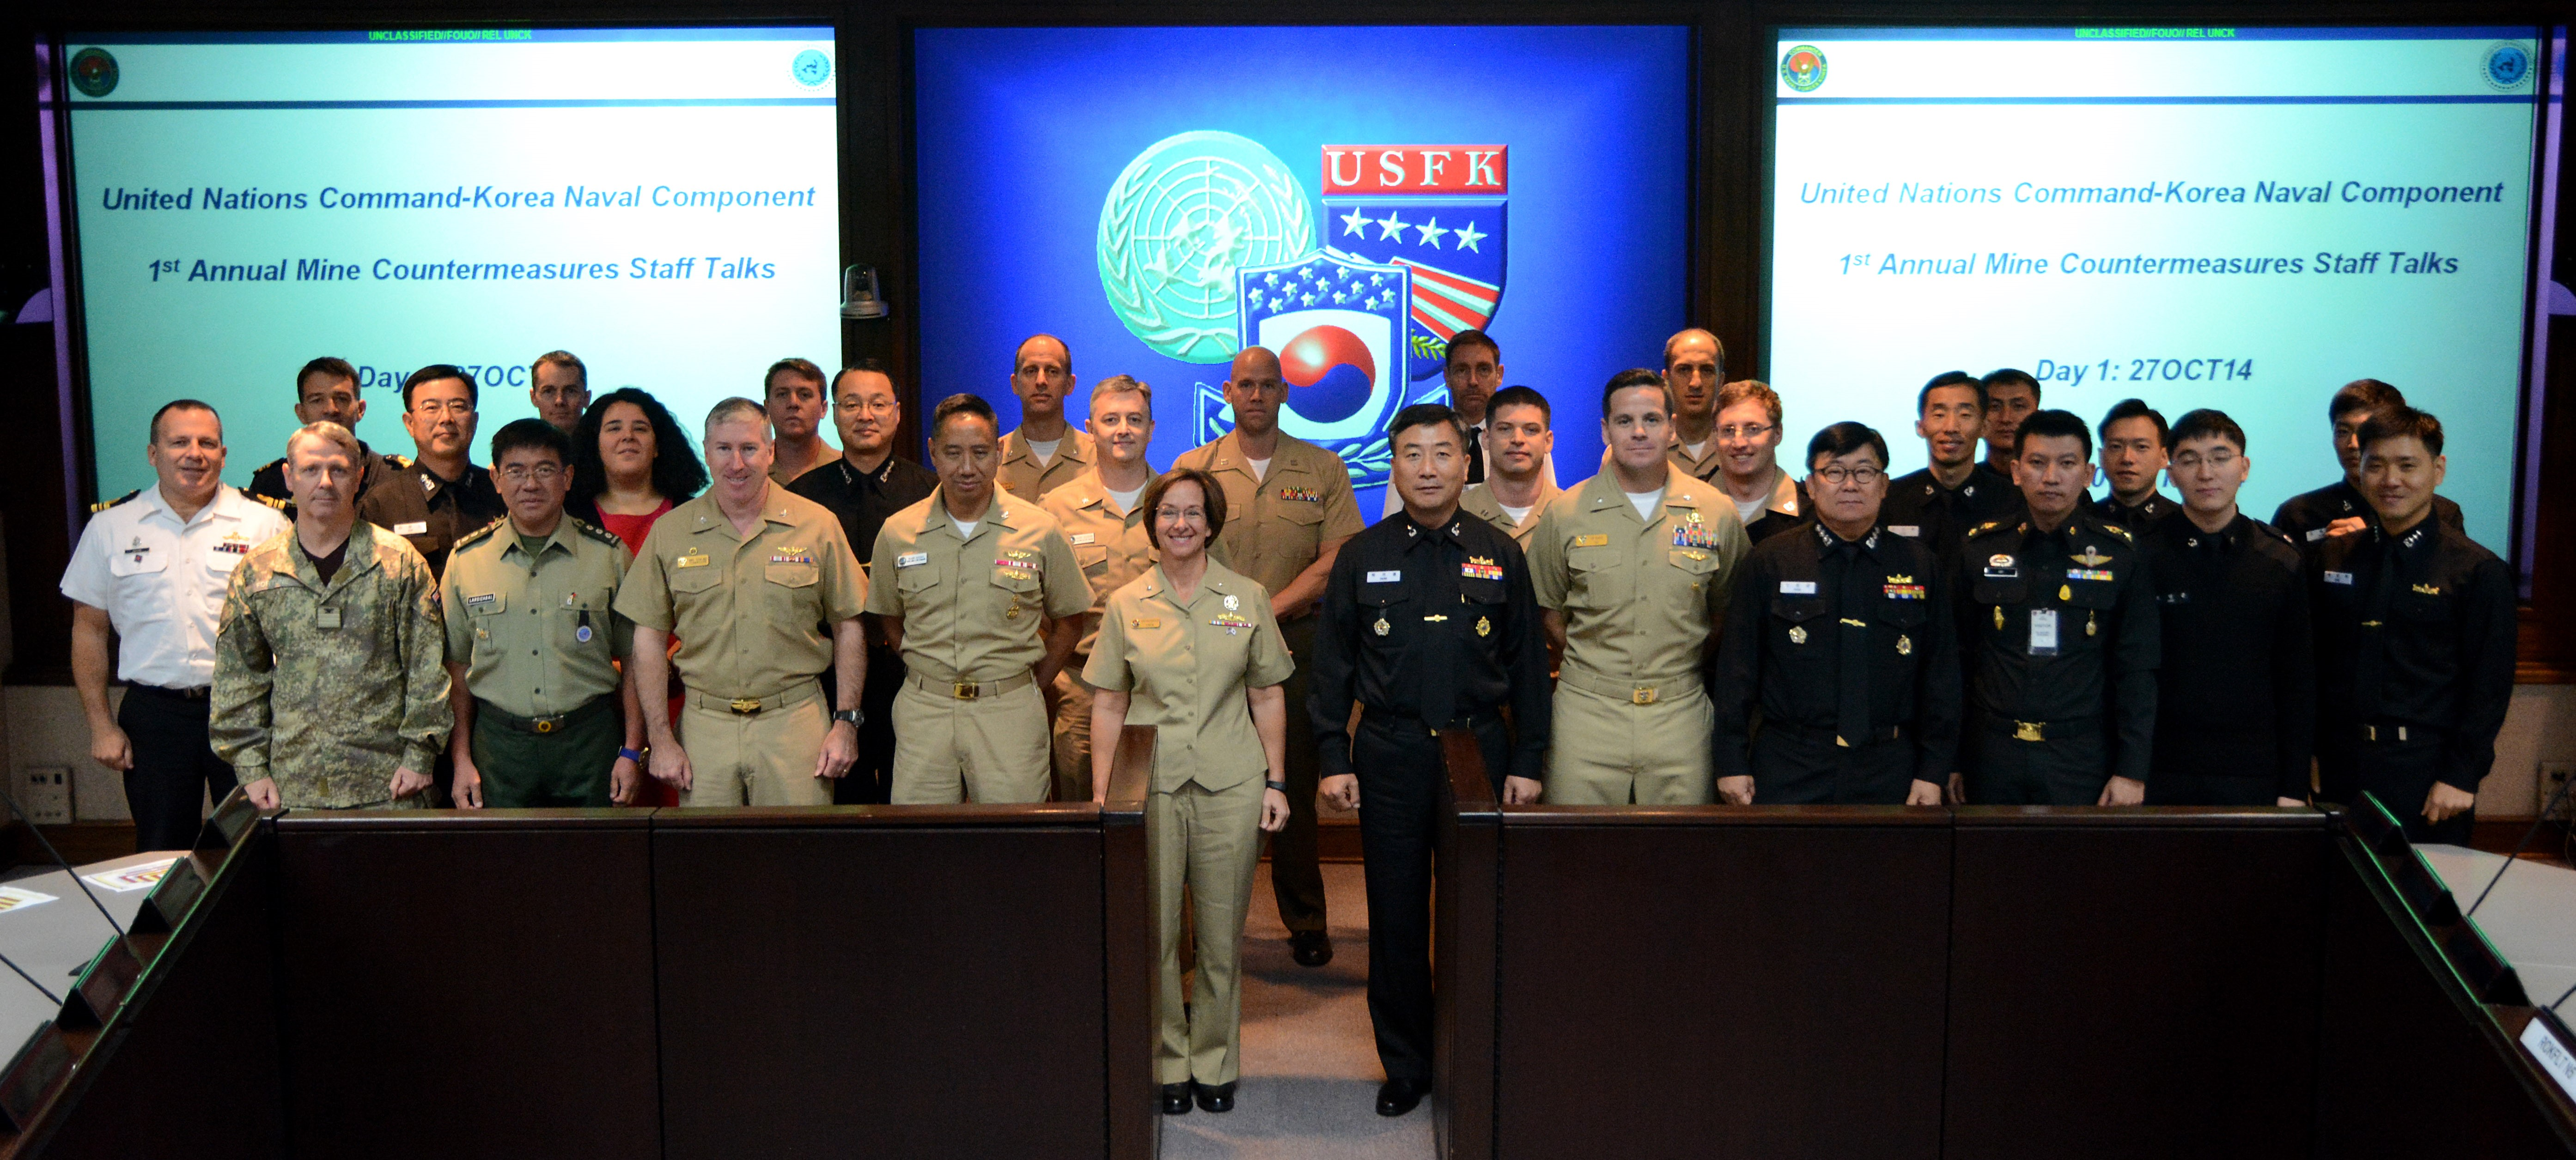 http://cimsec org/the-deep-ocean-seabed-warfare-and-the